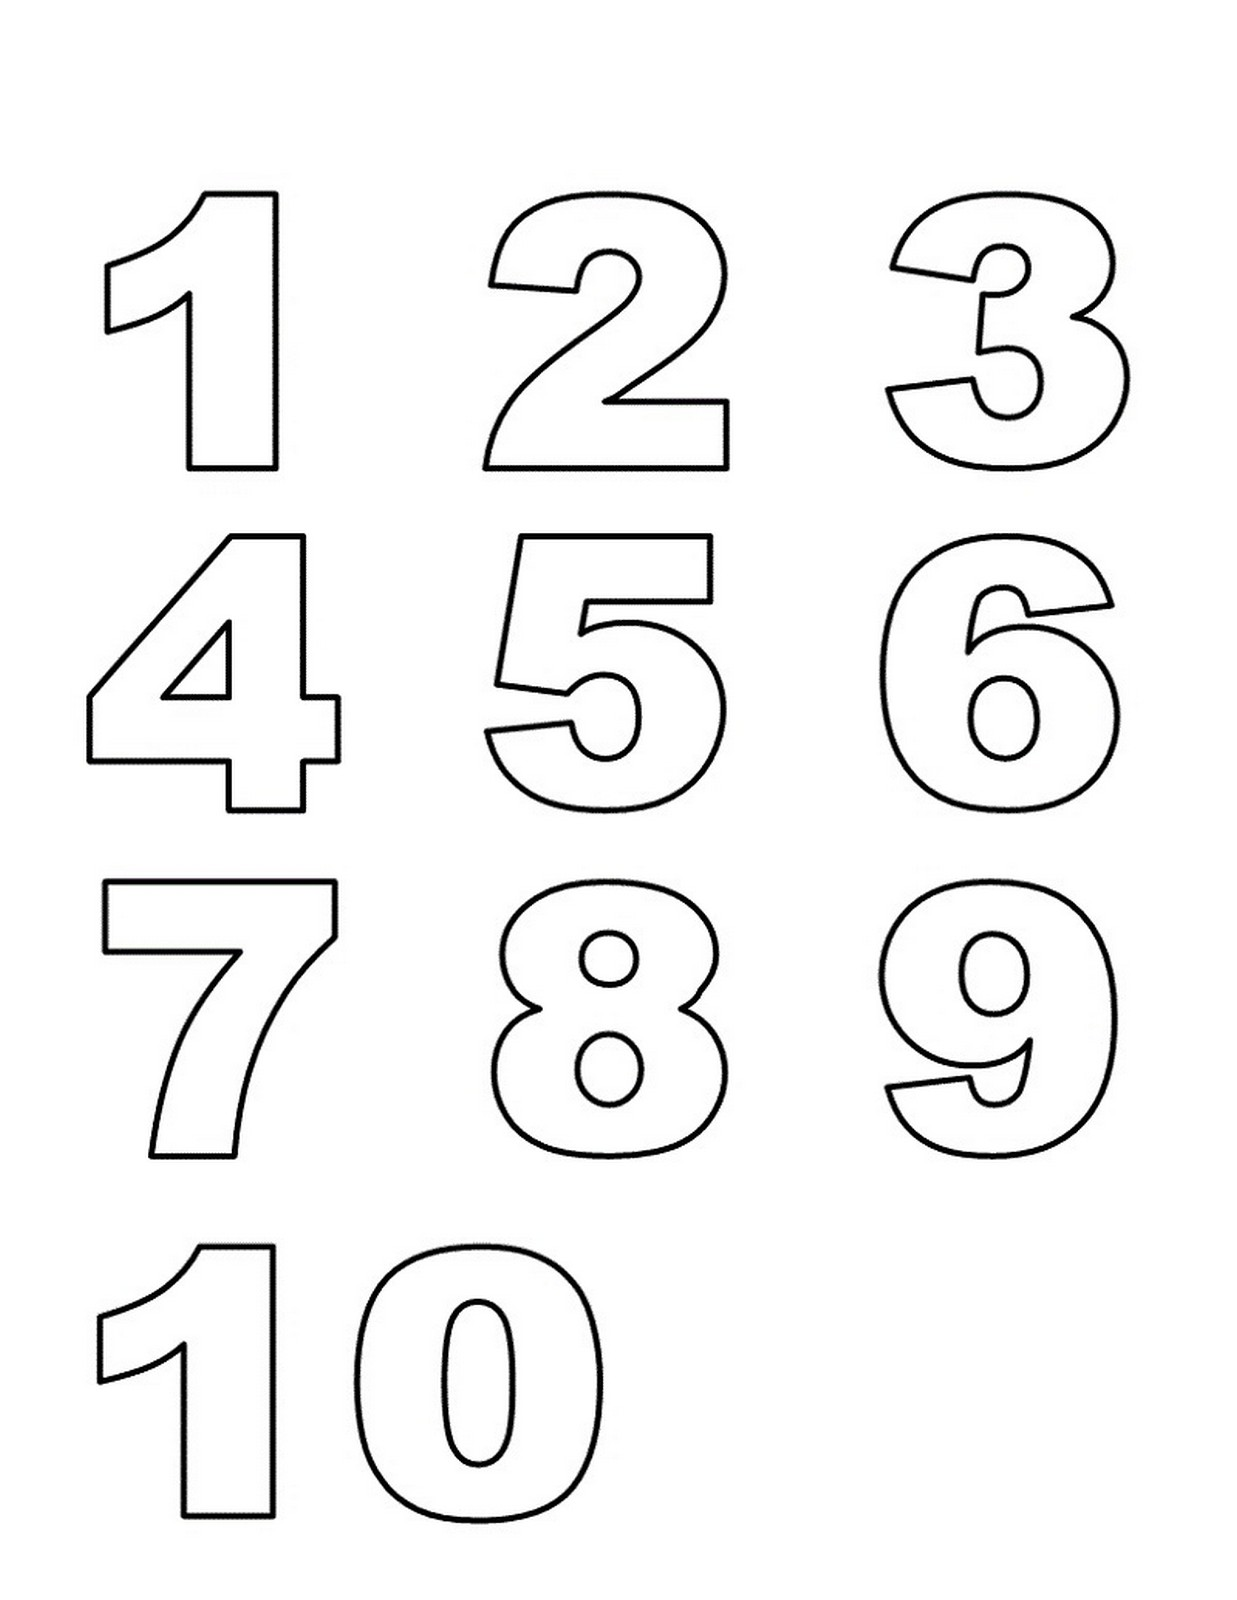 numbers 1-10 preschool printables list